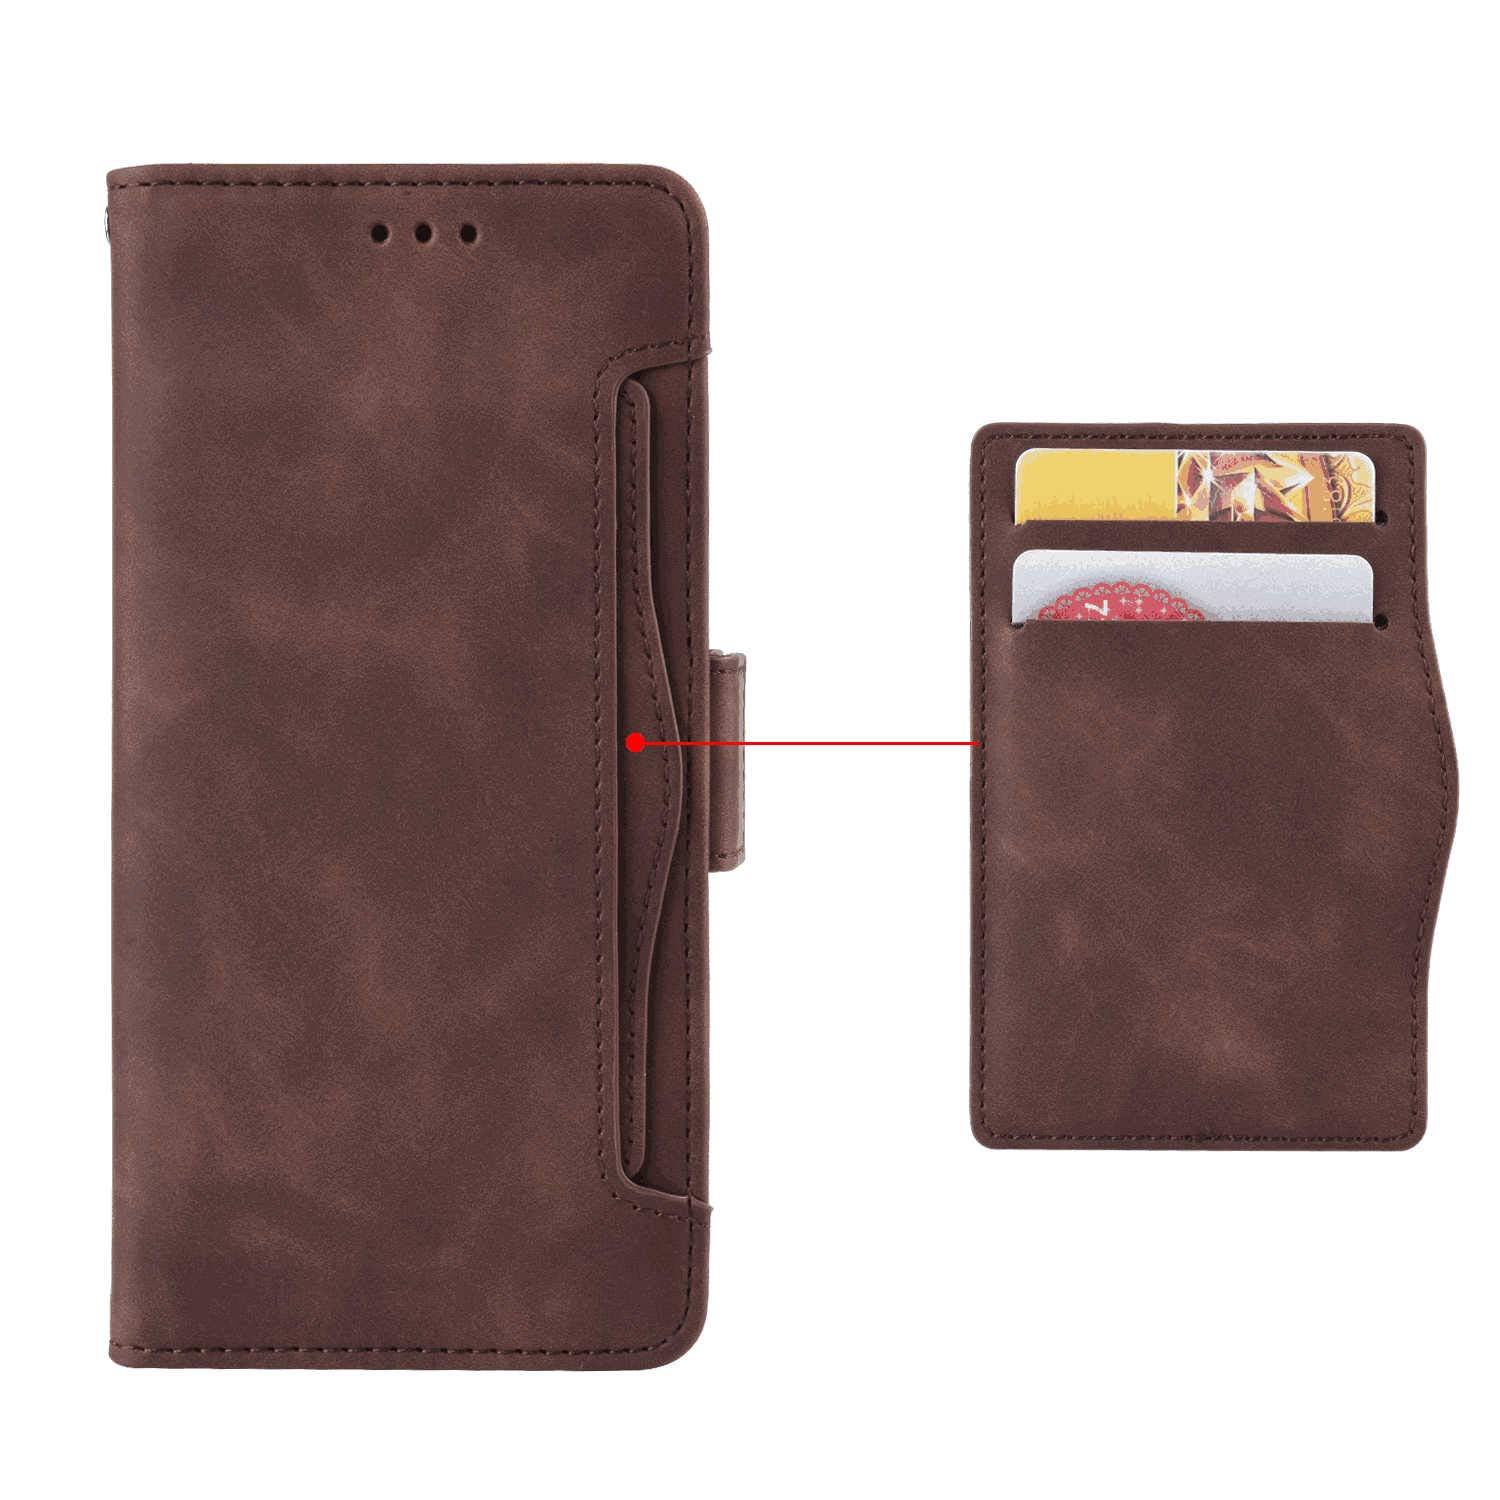 Huawei P20 Lite Flip Case Cover for Huawei P20 Lite Leather Kickstand Cell Phone Cover Extra-Durable Business Card Holders with Free Waterproof-Bag Elegant